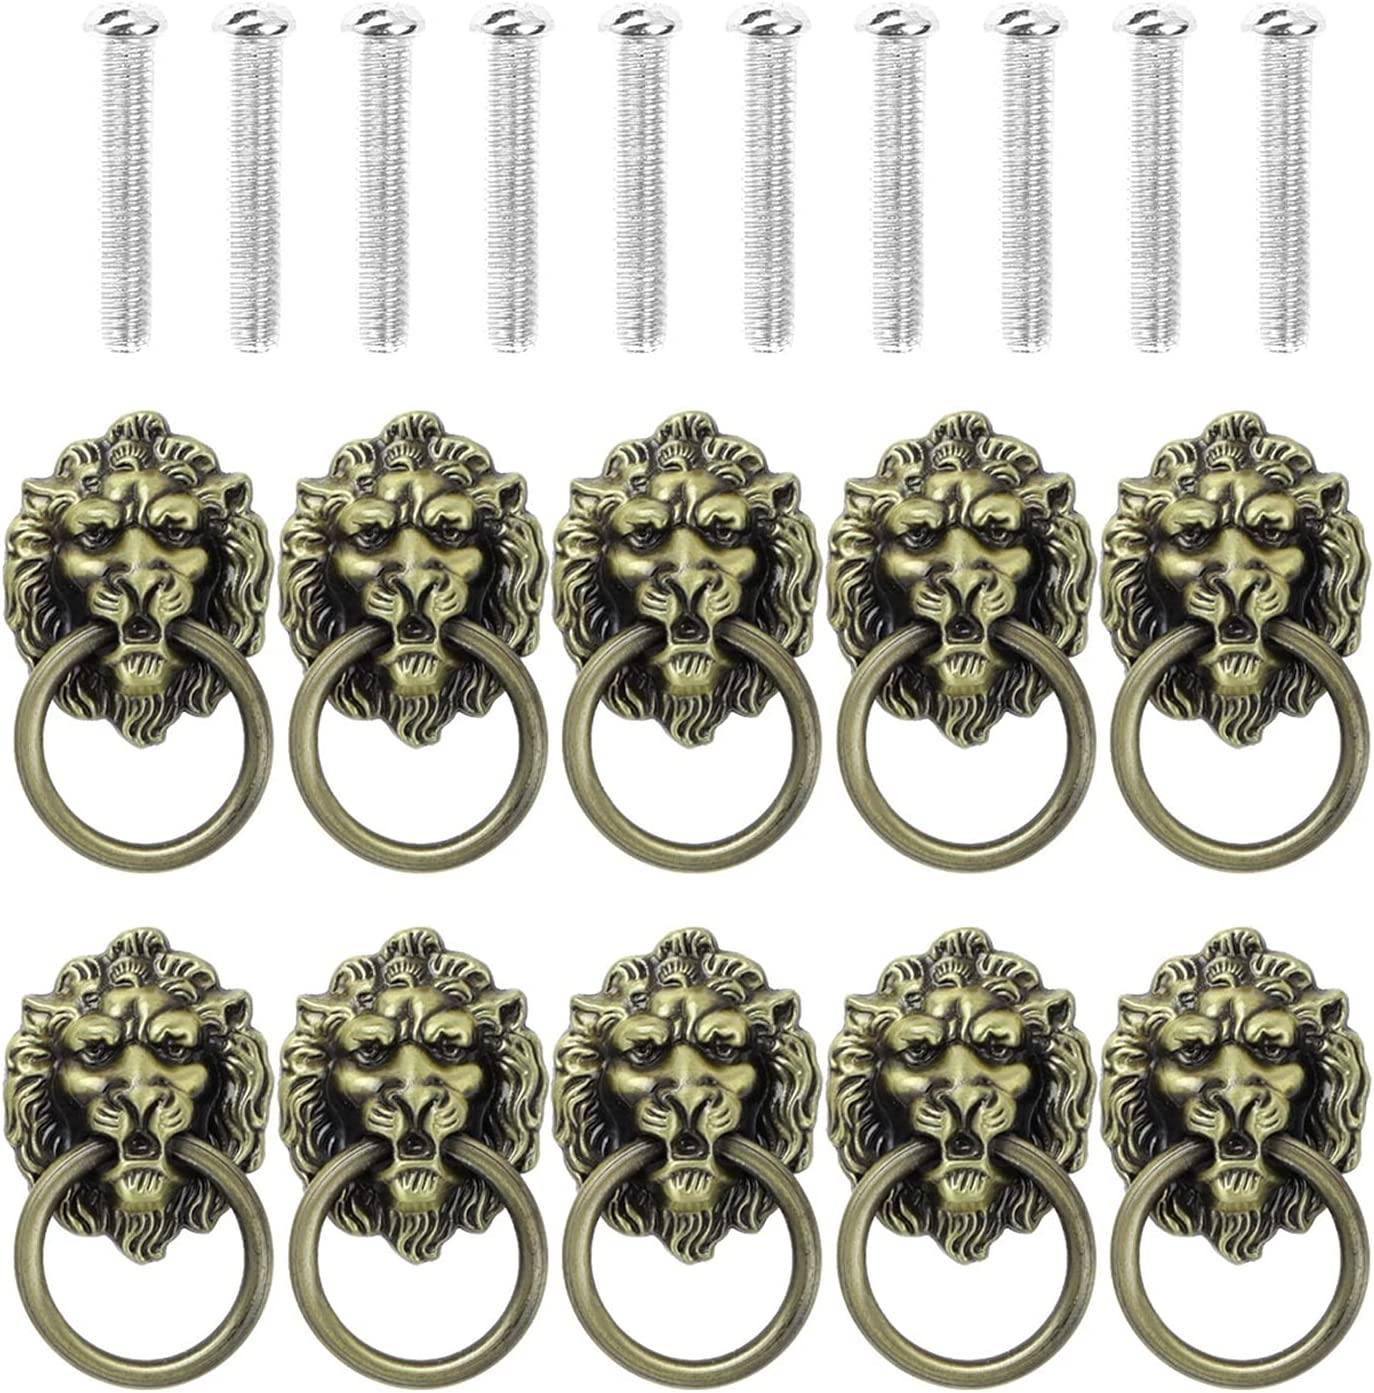 55% Year-end gift OFF CHENGSYSTE Push Pull Handles Vintage Furniture Lio 10Pcs